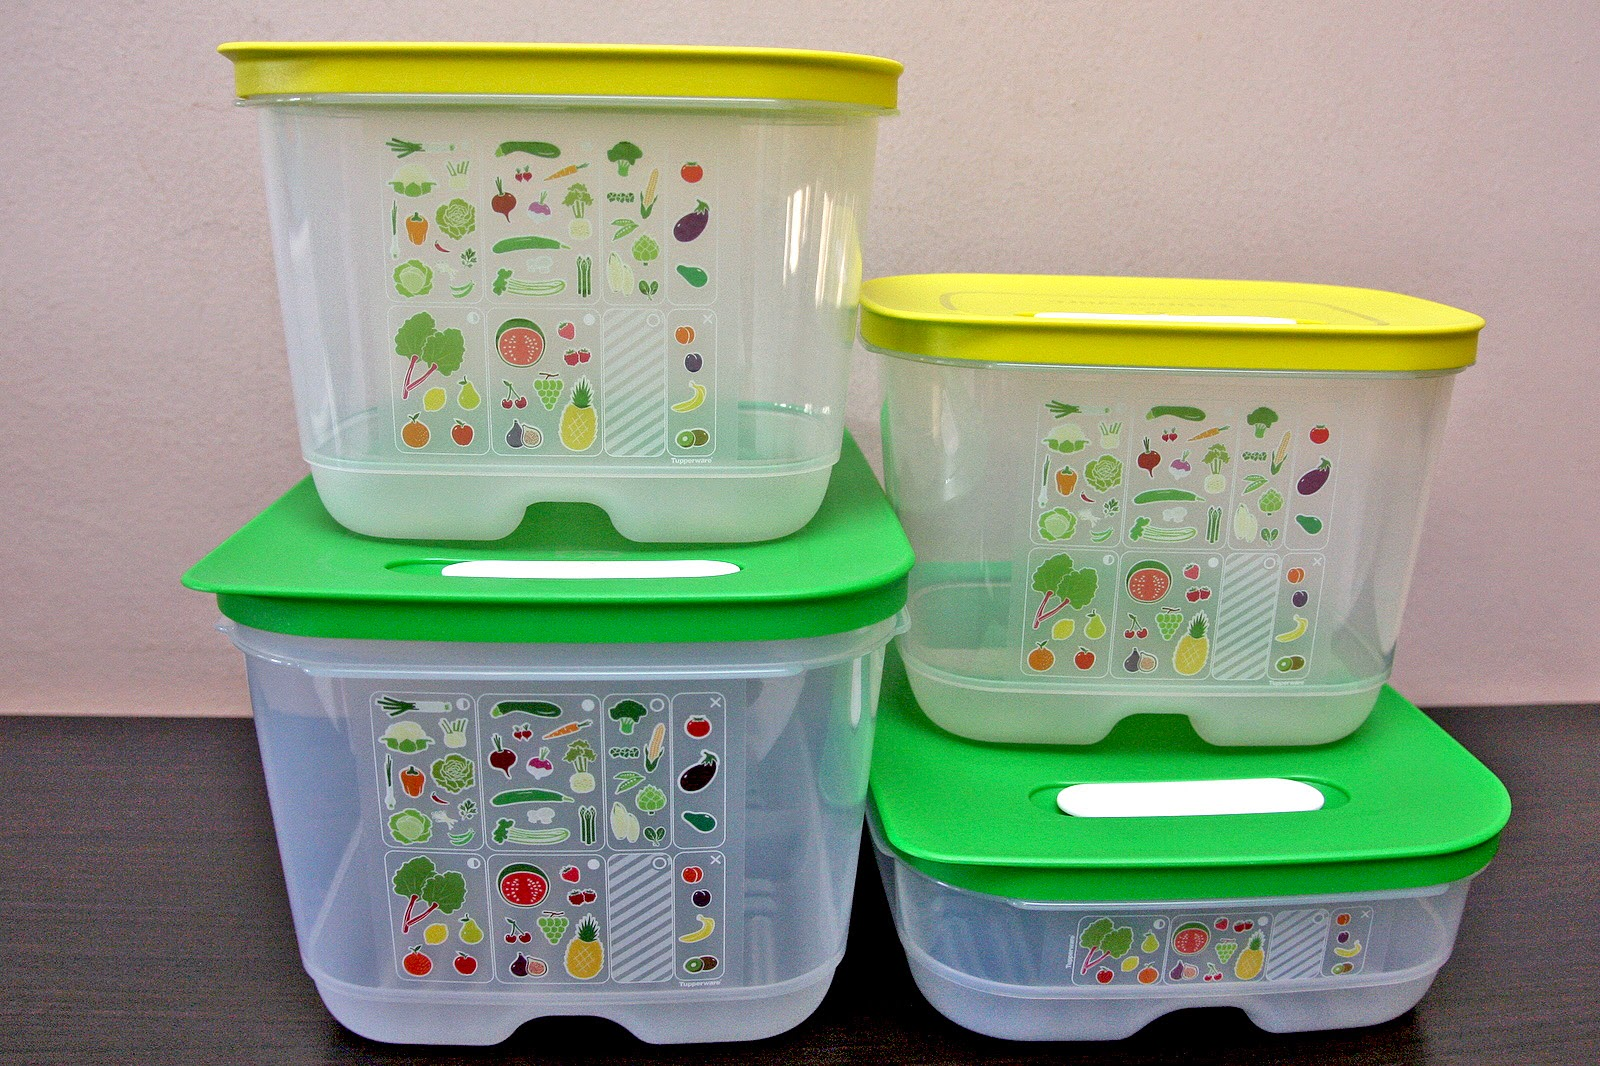 Storage Boxes Sydney Tupperware Ventsmart Fridge Storage Containers Nanonature Water